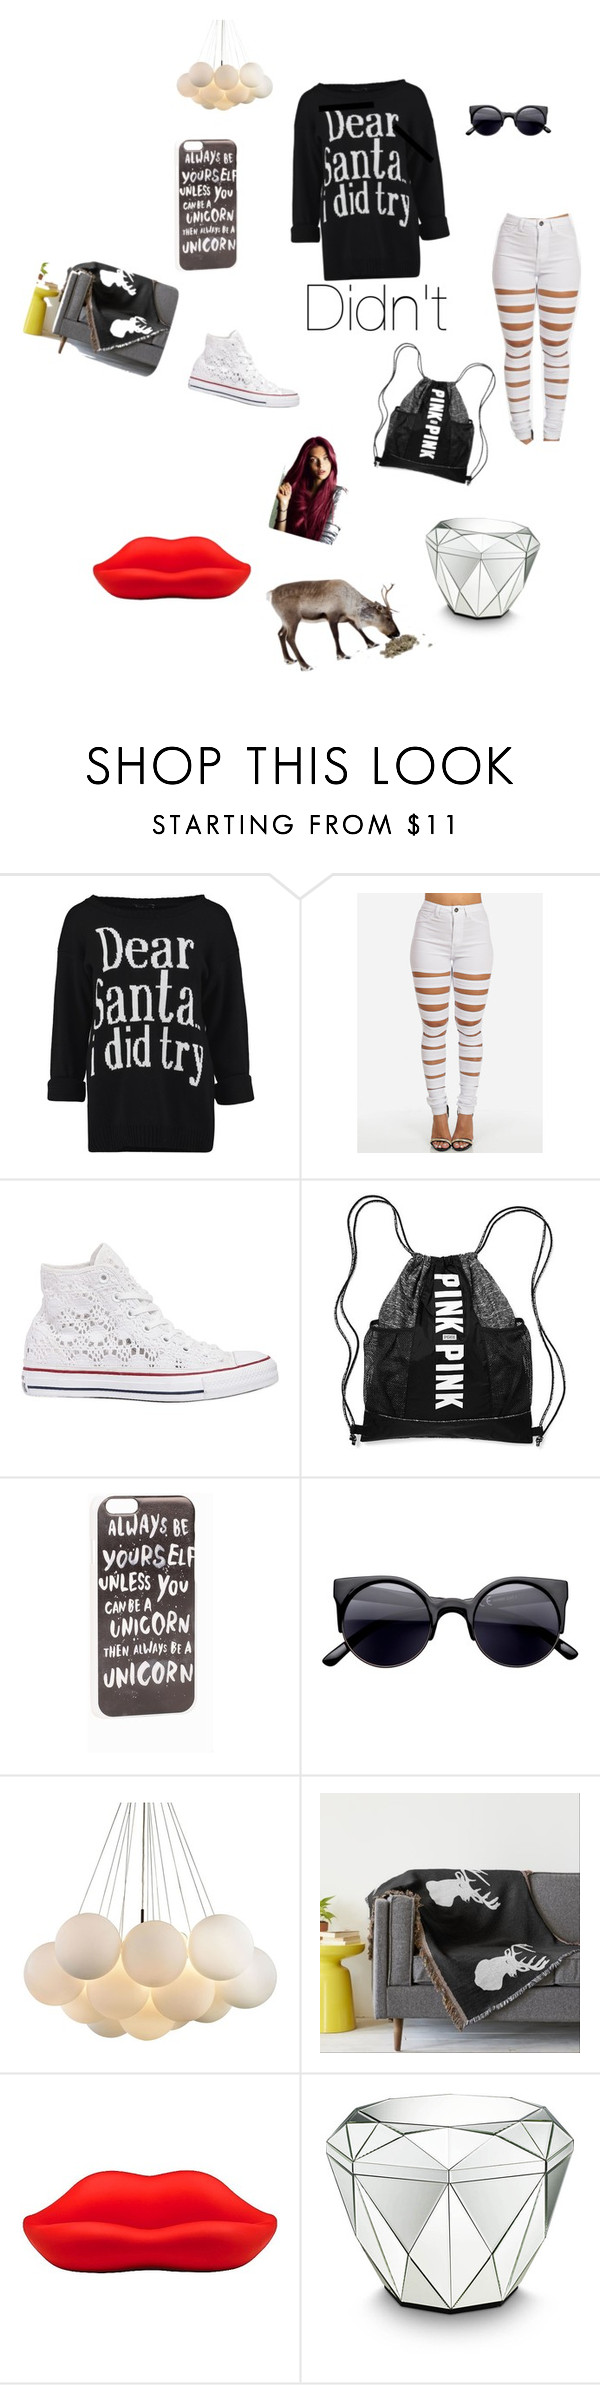 """""""I don't care right know"""" by desisu ❤ liked on Polyvore featuring interior, interiors, interior design, home, home decor, interior decorating, Converse, JFR and Heller"""